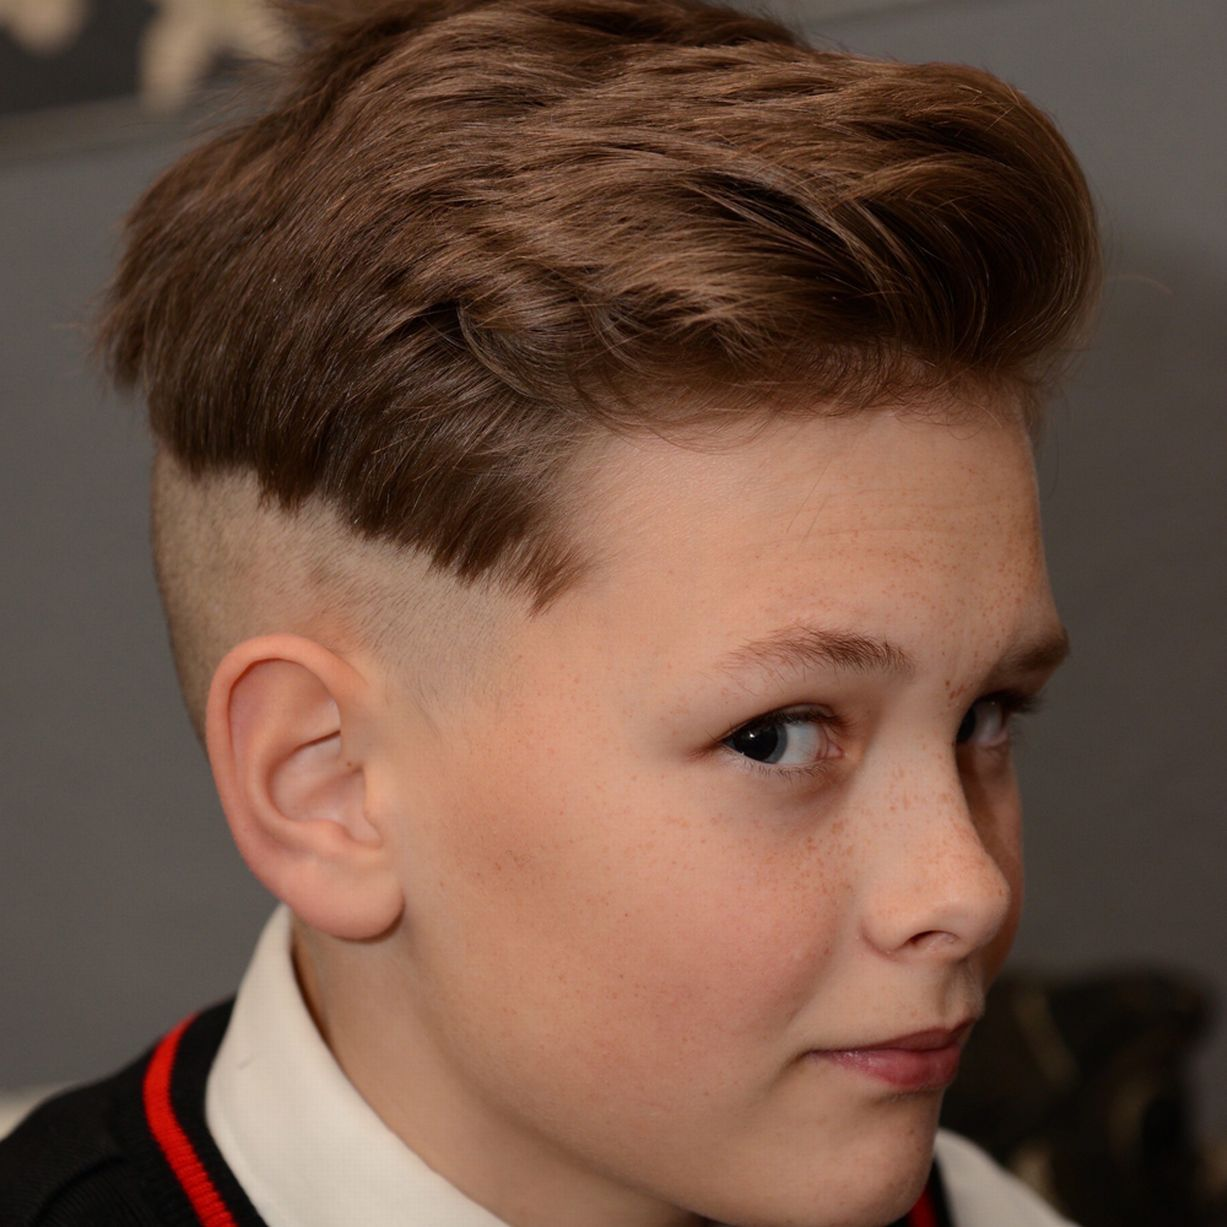 Joey Essex Hairstyle Glen Renton With The Joey Yrivwgk Hair Styles Joey Essex Hairstyle Renton